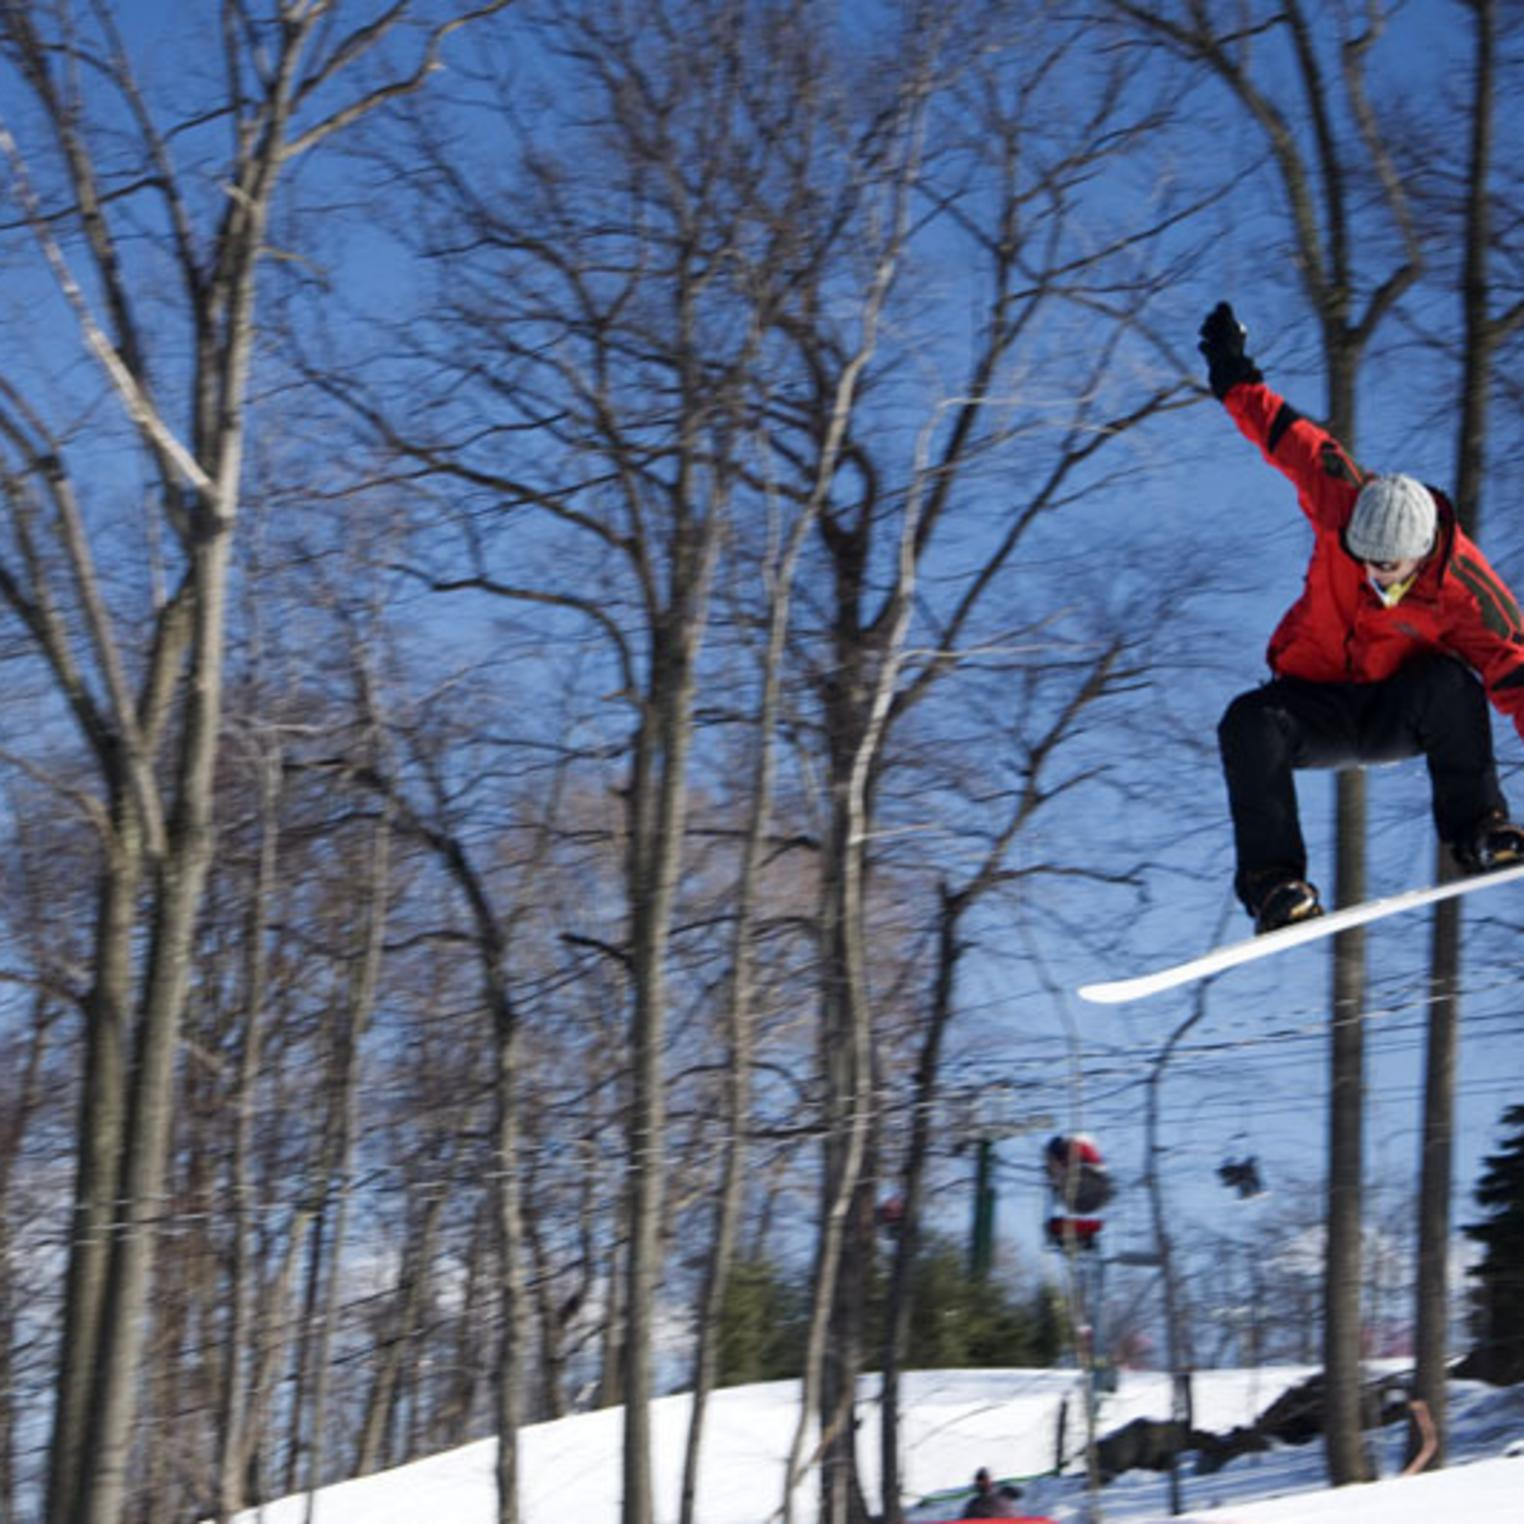 Zip down the slopes at nearby Roundtop Mountain Resort